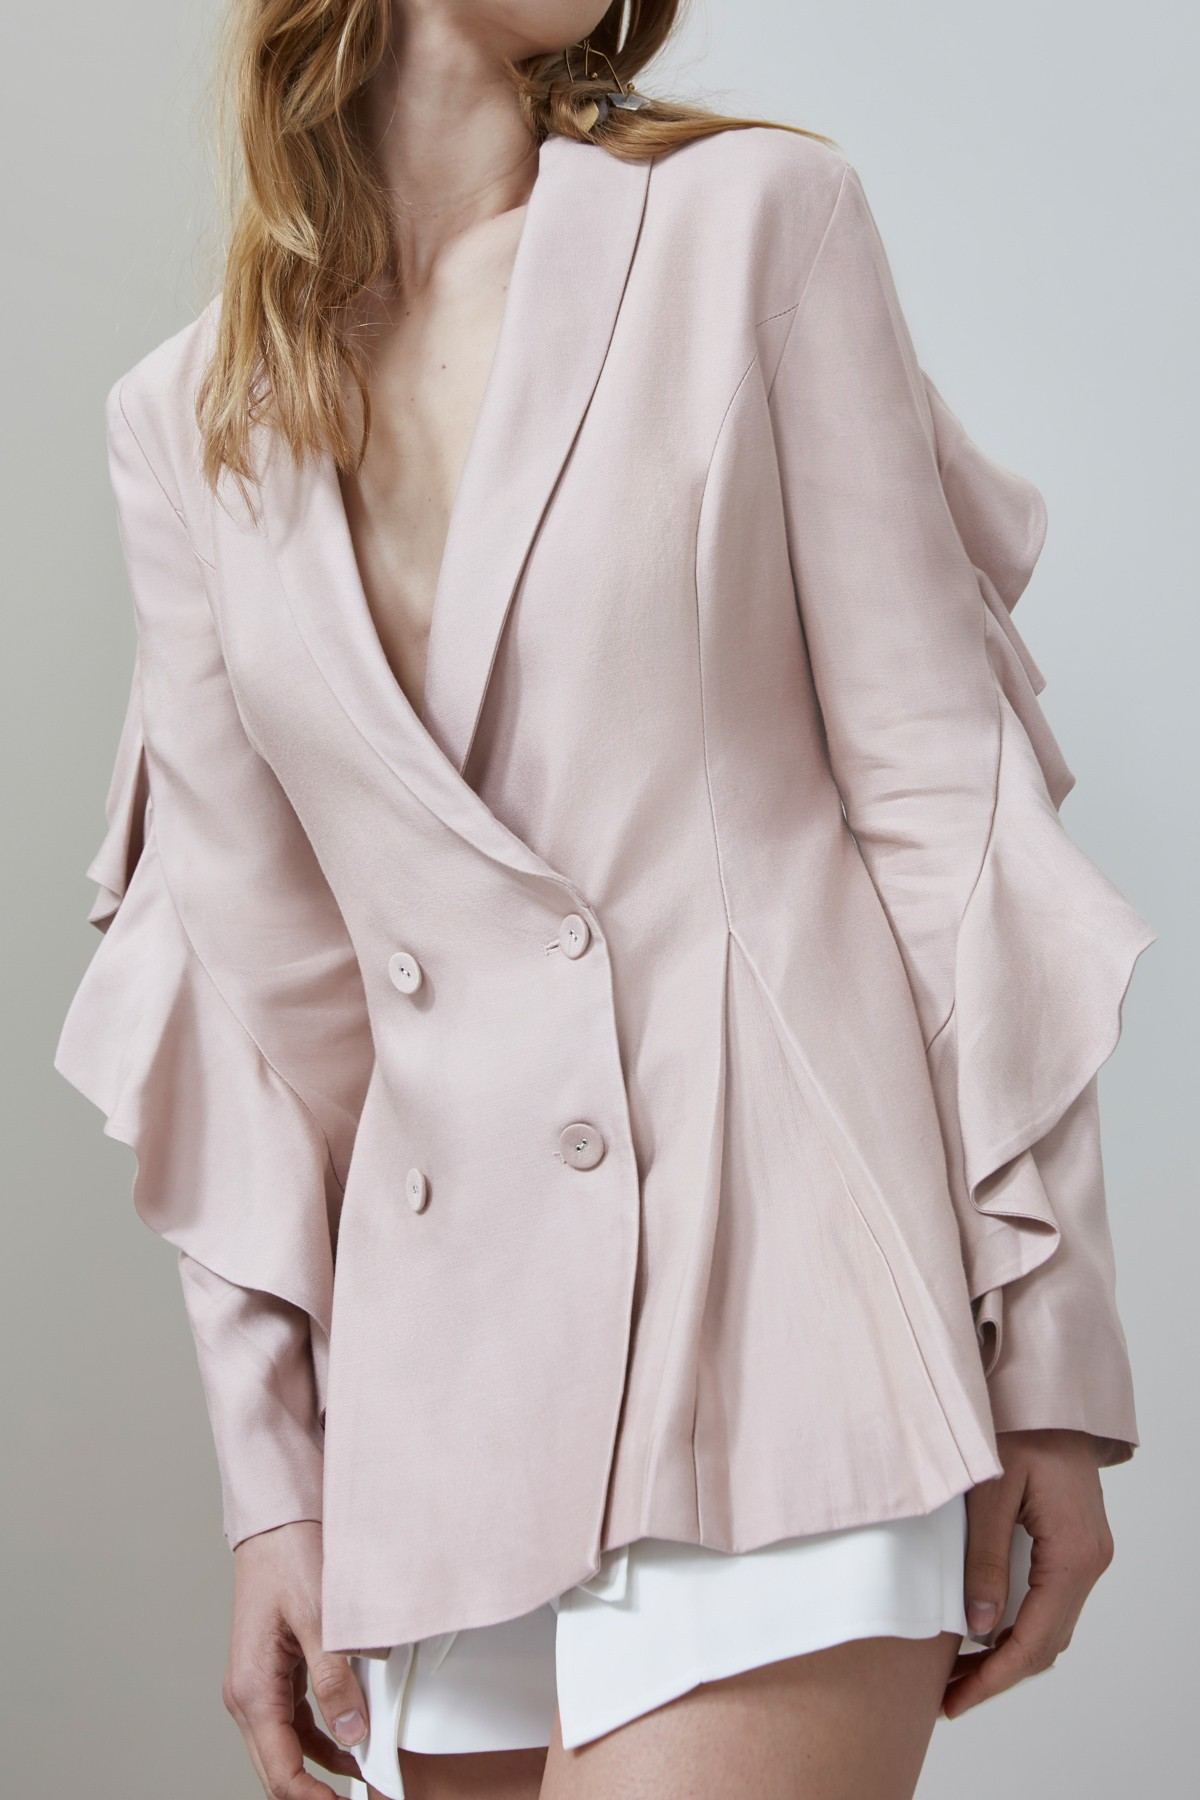 C/MEO Collective Replay Blazer